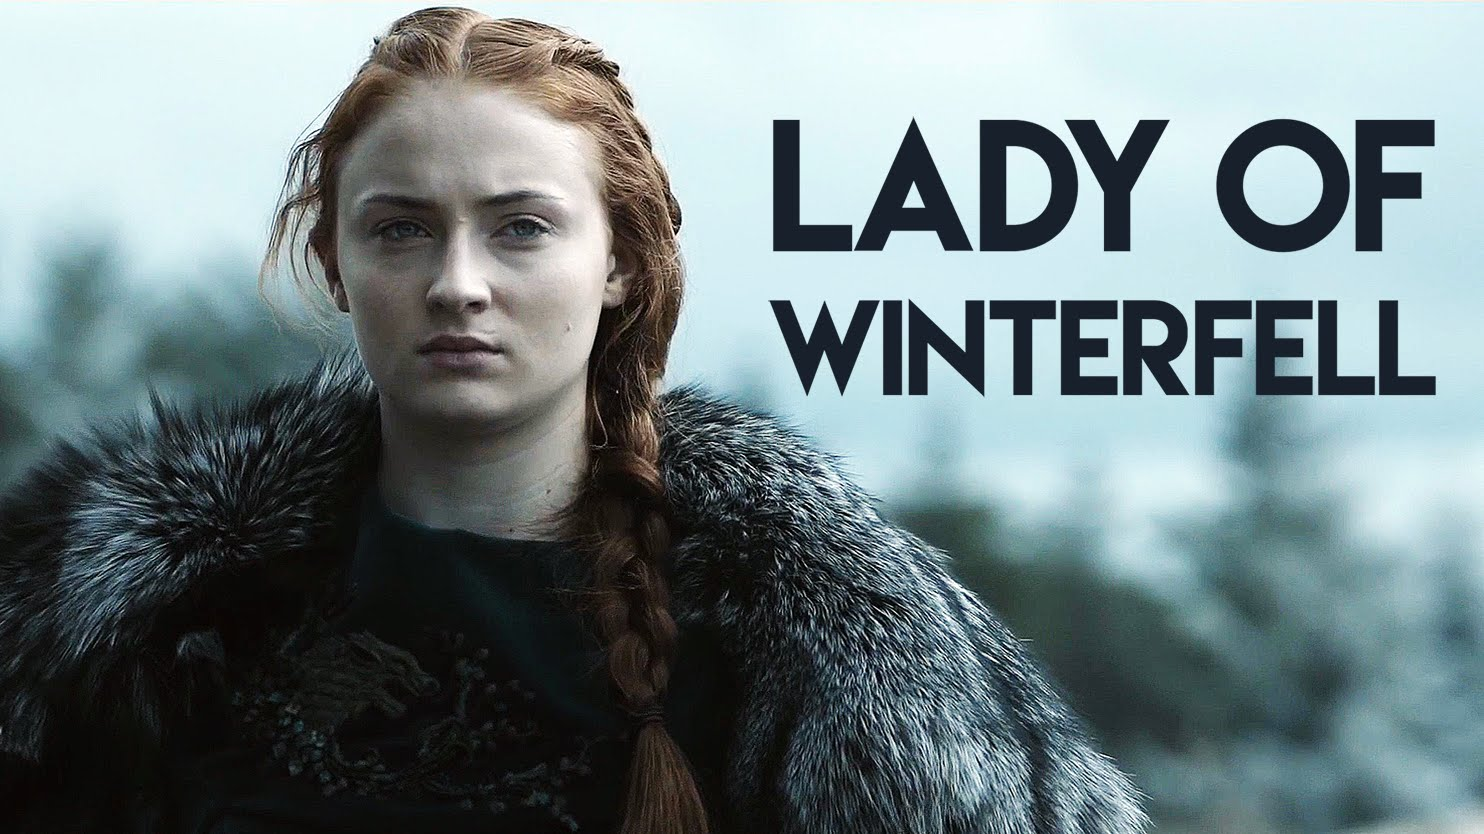 Photo of 7 Crazy Memes on Sansa Stark That Will Show She Ain't Just A Damsel in Distress